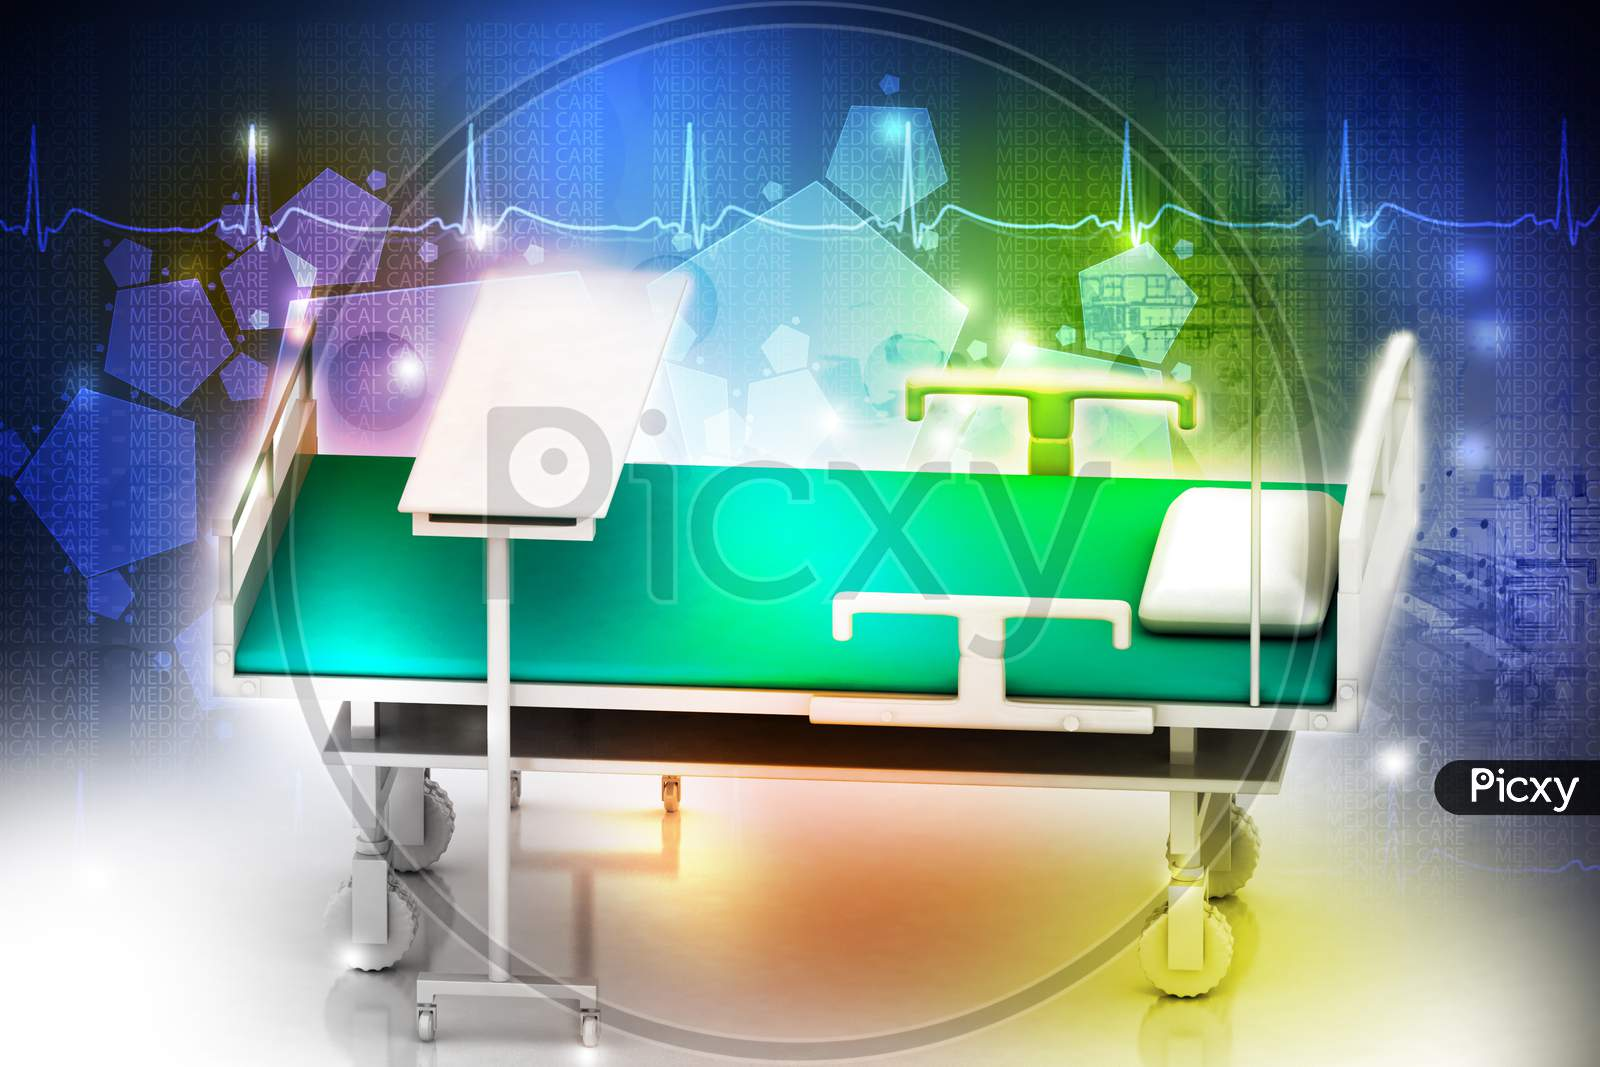 3D Multi Use Hospital Bed In Abstract White Background